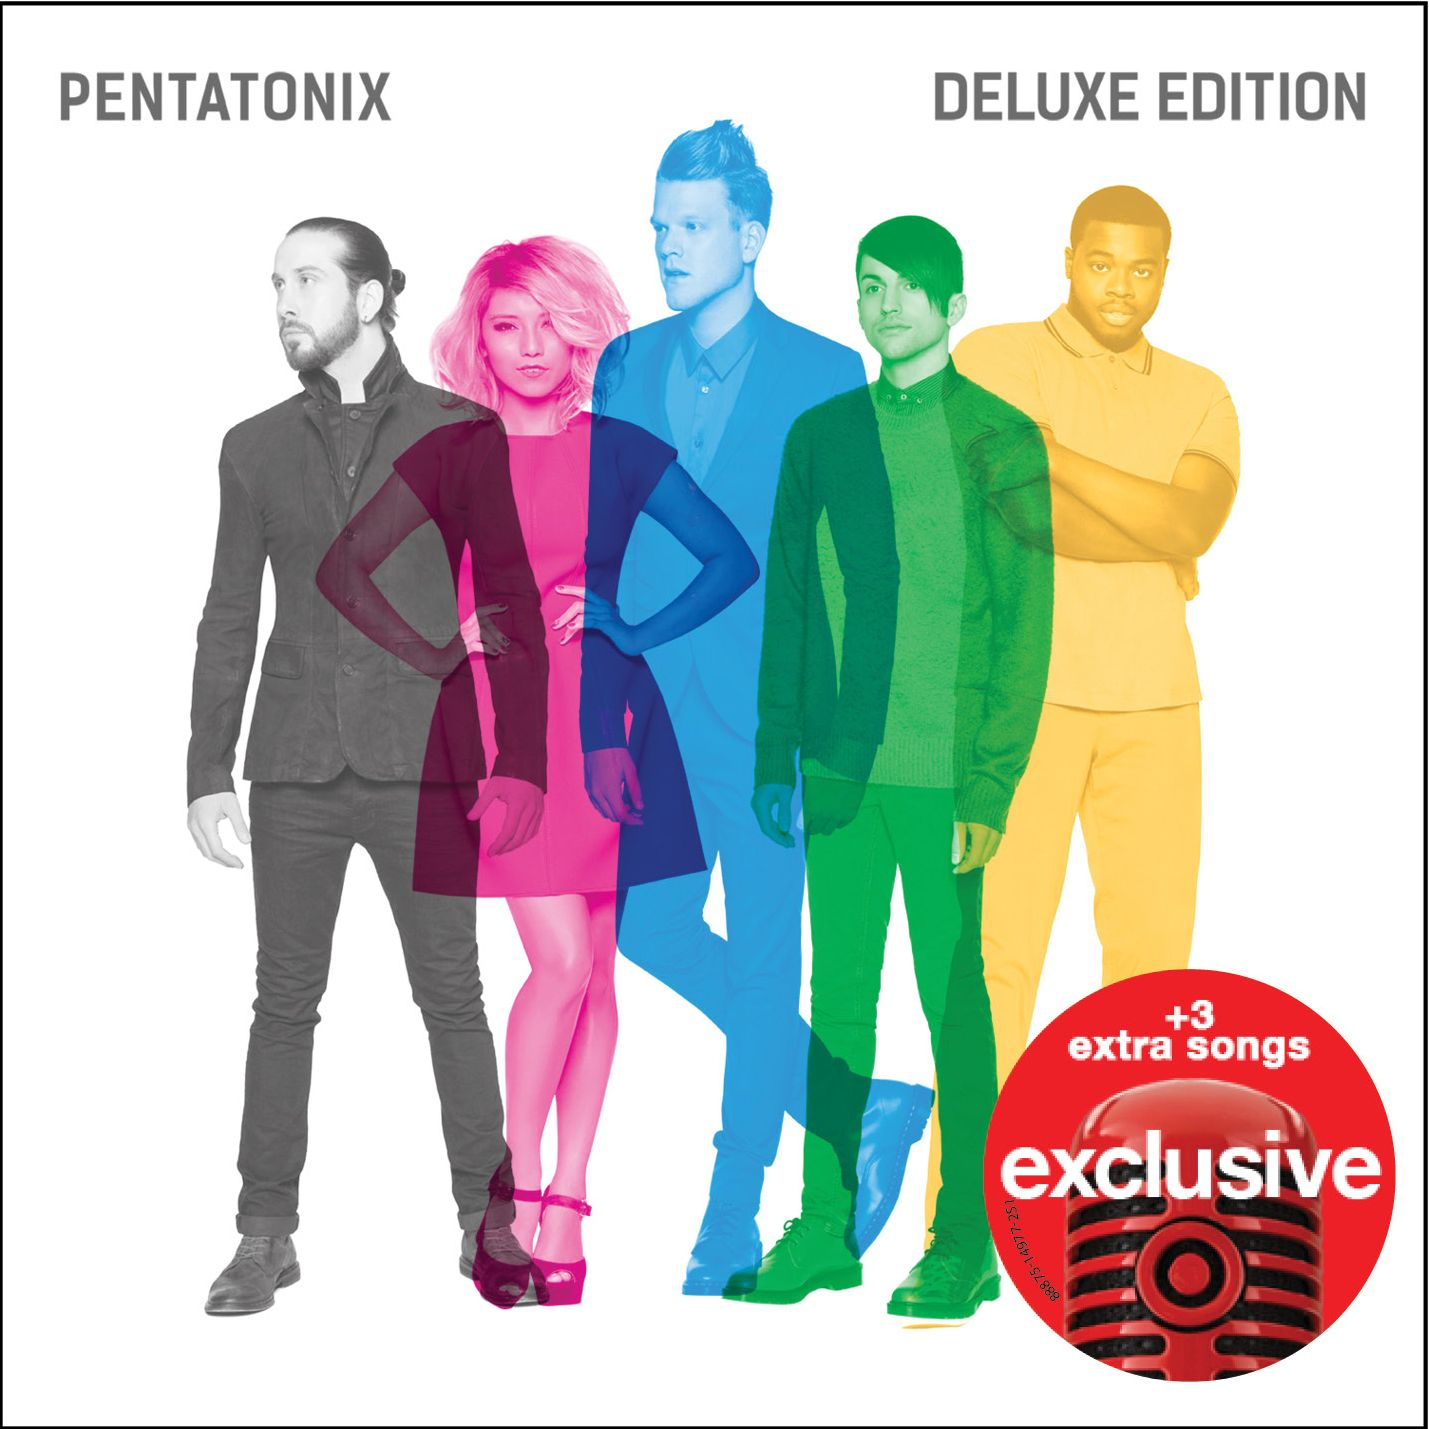 "Pentatonix - ""Pentatonix"" (Deluxe Edition): 1. Na Na Na 2. Can't Sleep Love 3. Sing 4. Misbehavin' 5. Ref 6. First Things First 7. Rose Gold 8. If I Ever Fall In Love (feat. Jason Derulo) 9. Cracked 10. Water 11. Take Me Home 12. New Year's Day 13. Light In The Hallway 14. Where Are Ü Now 15. Cheerleader 16. Lean On 17. Can't Sleep Love (feat. Tink)"